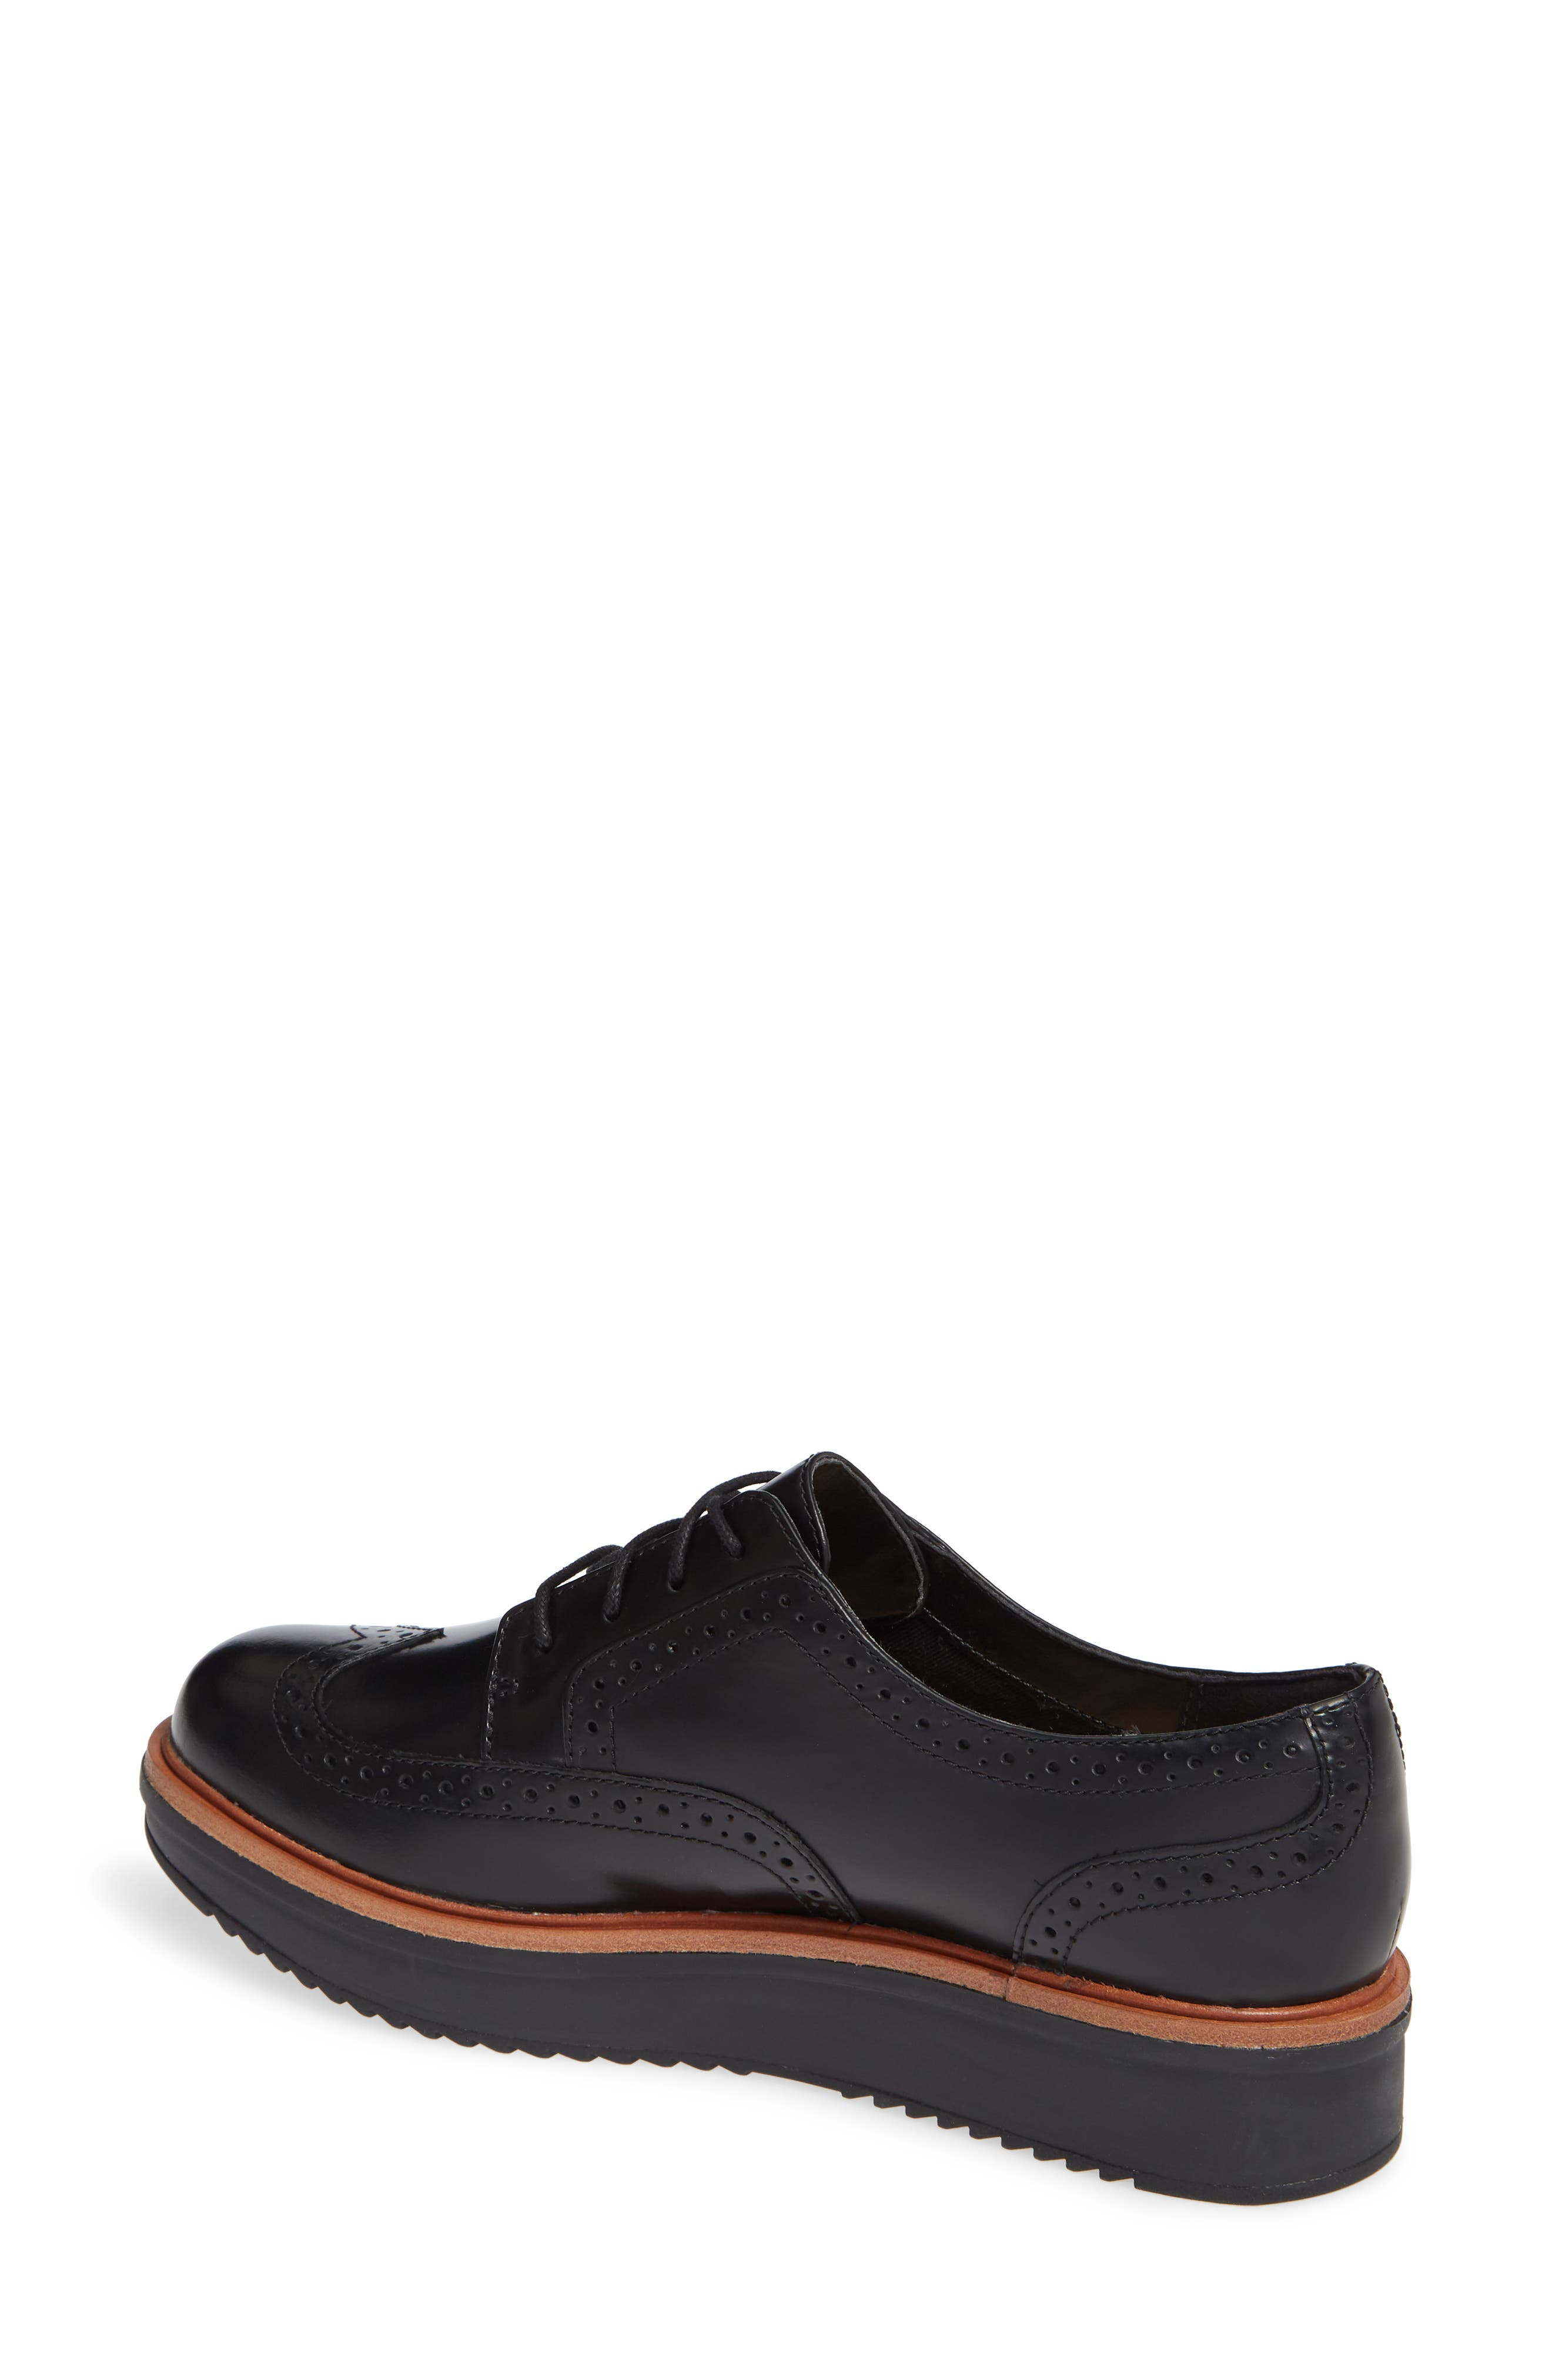 Teadale Maira Wingtip Derby,                             Alternate thumbnail 2, color,                             BLACK LEATHER